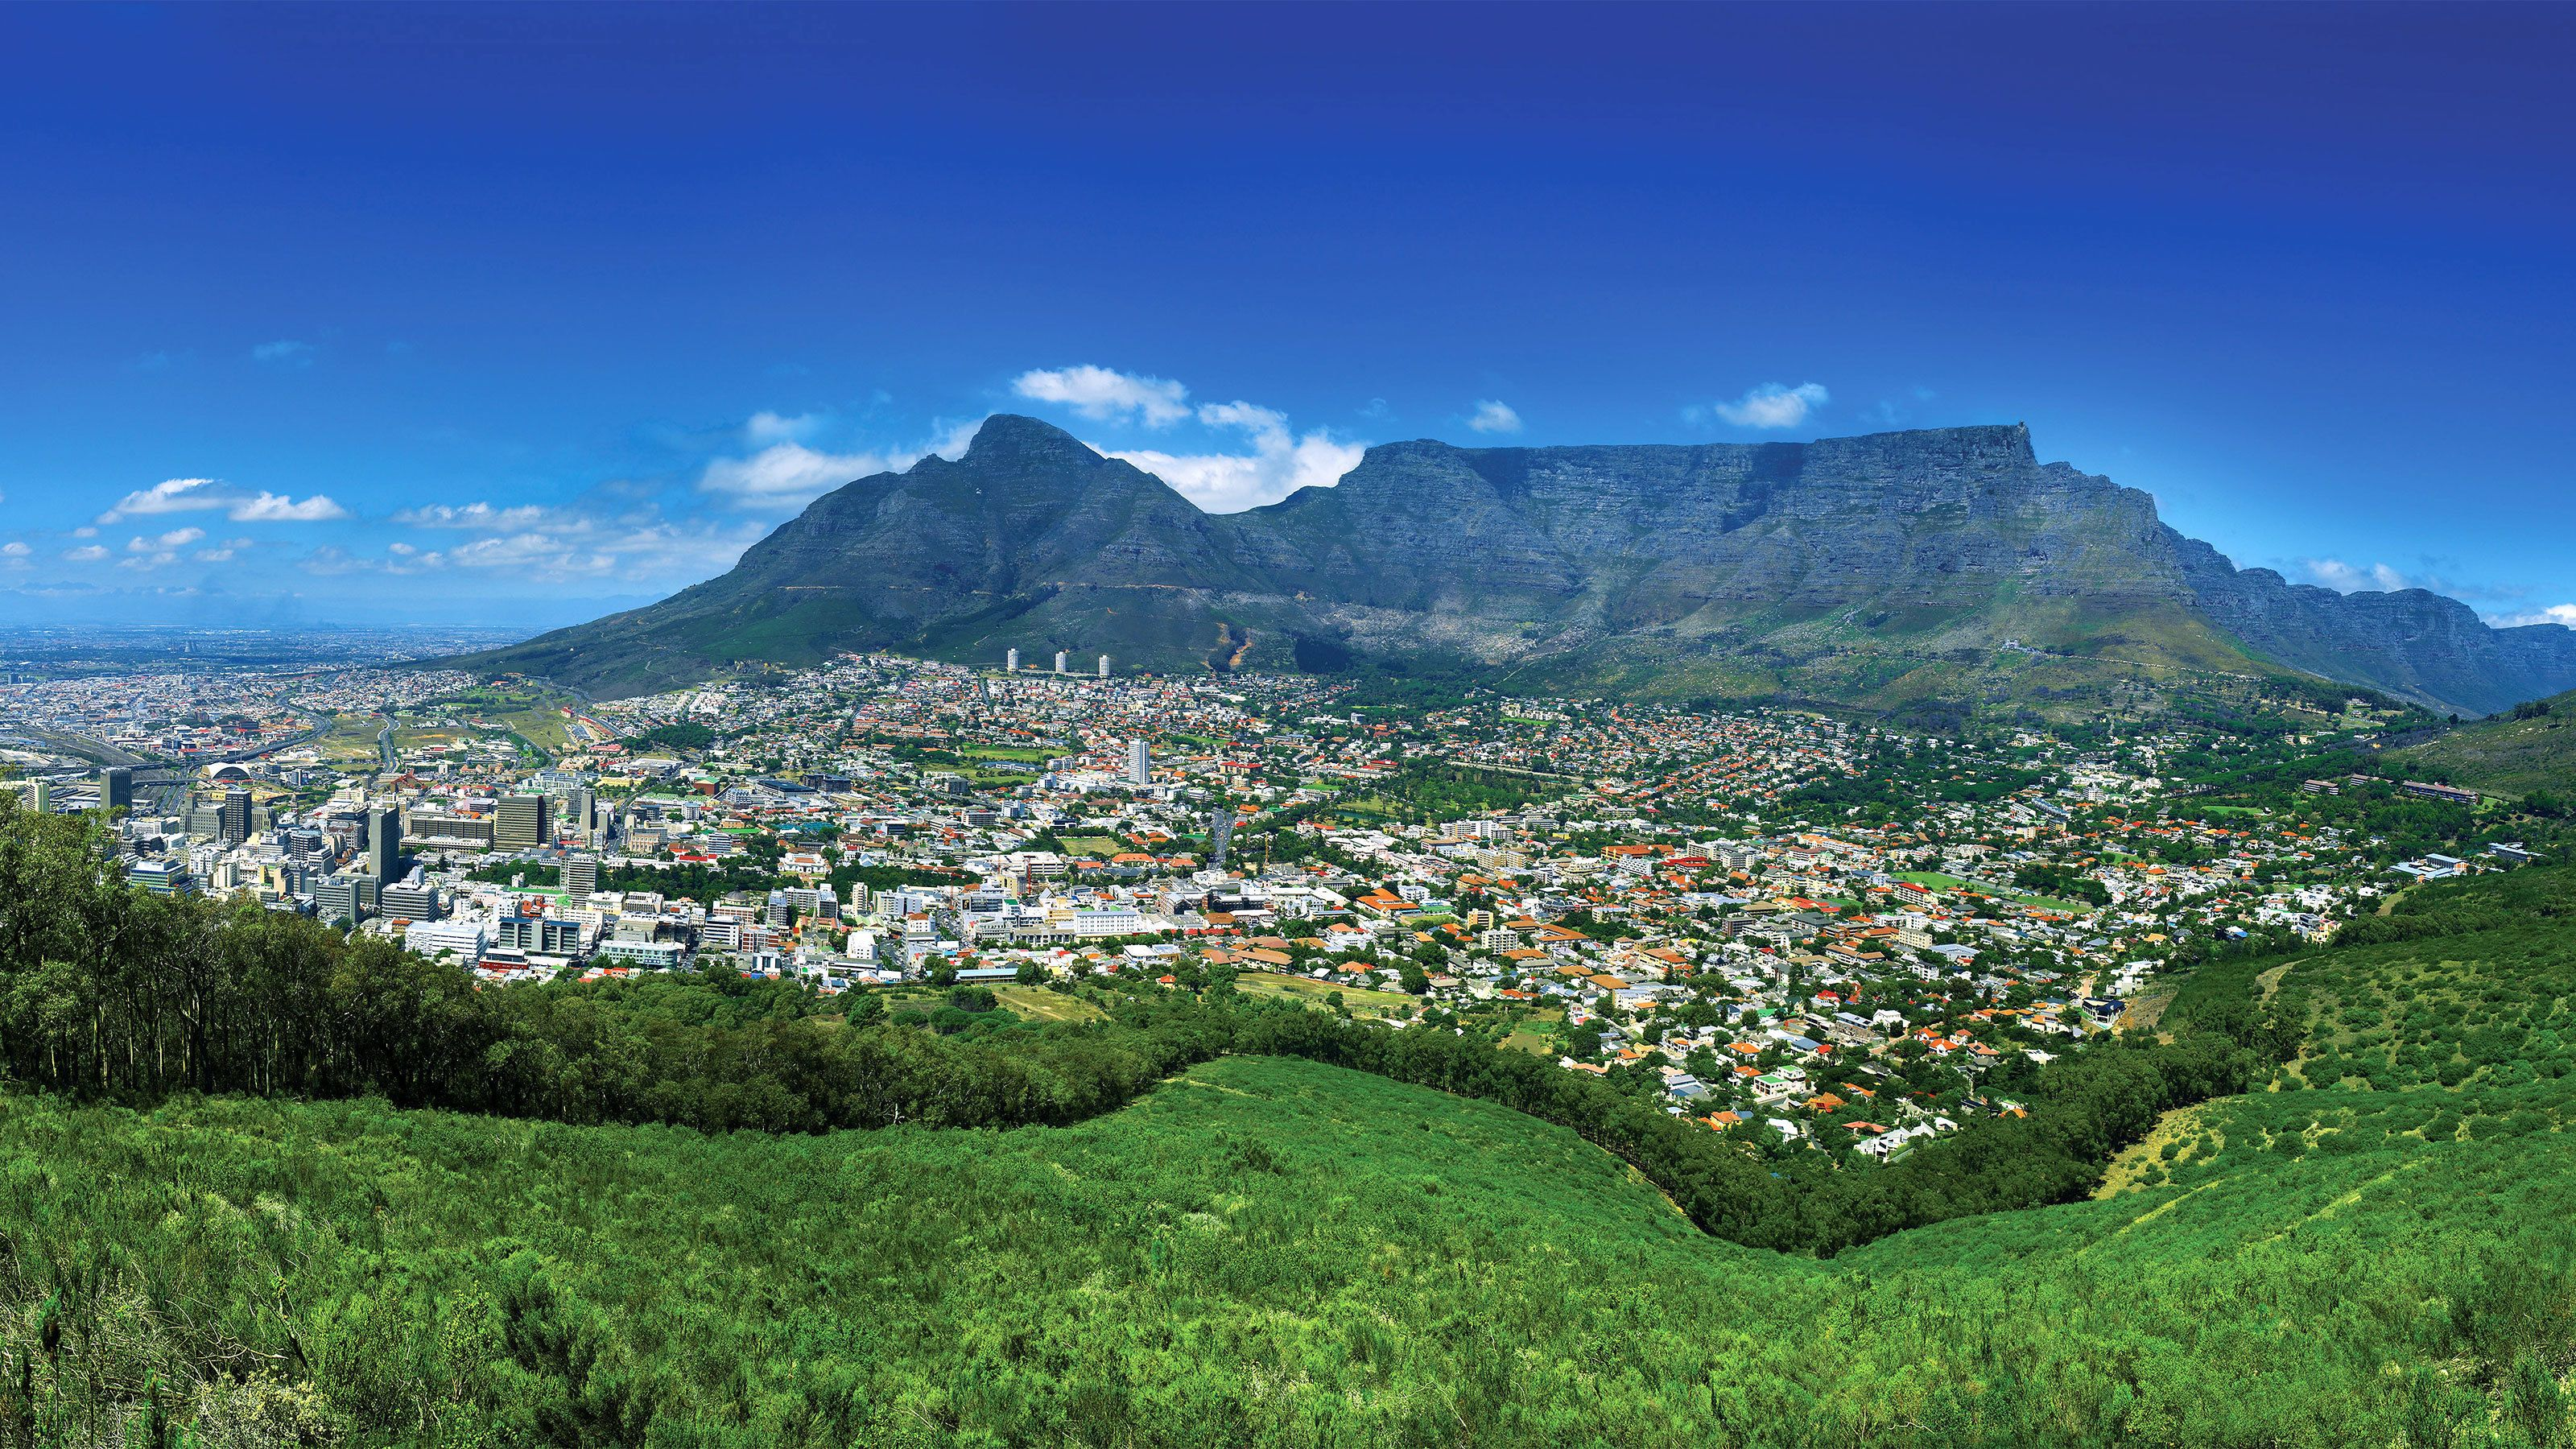 The beautiful Cape Town surrounded by mountains